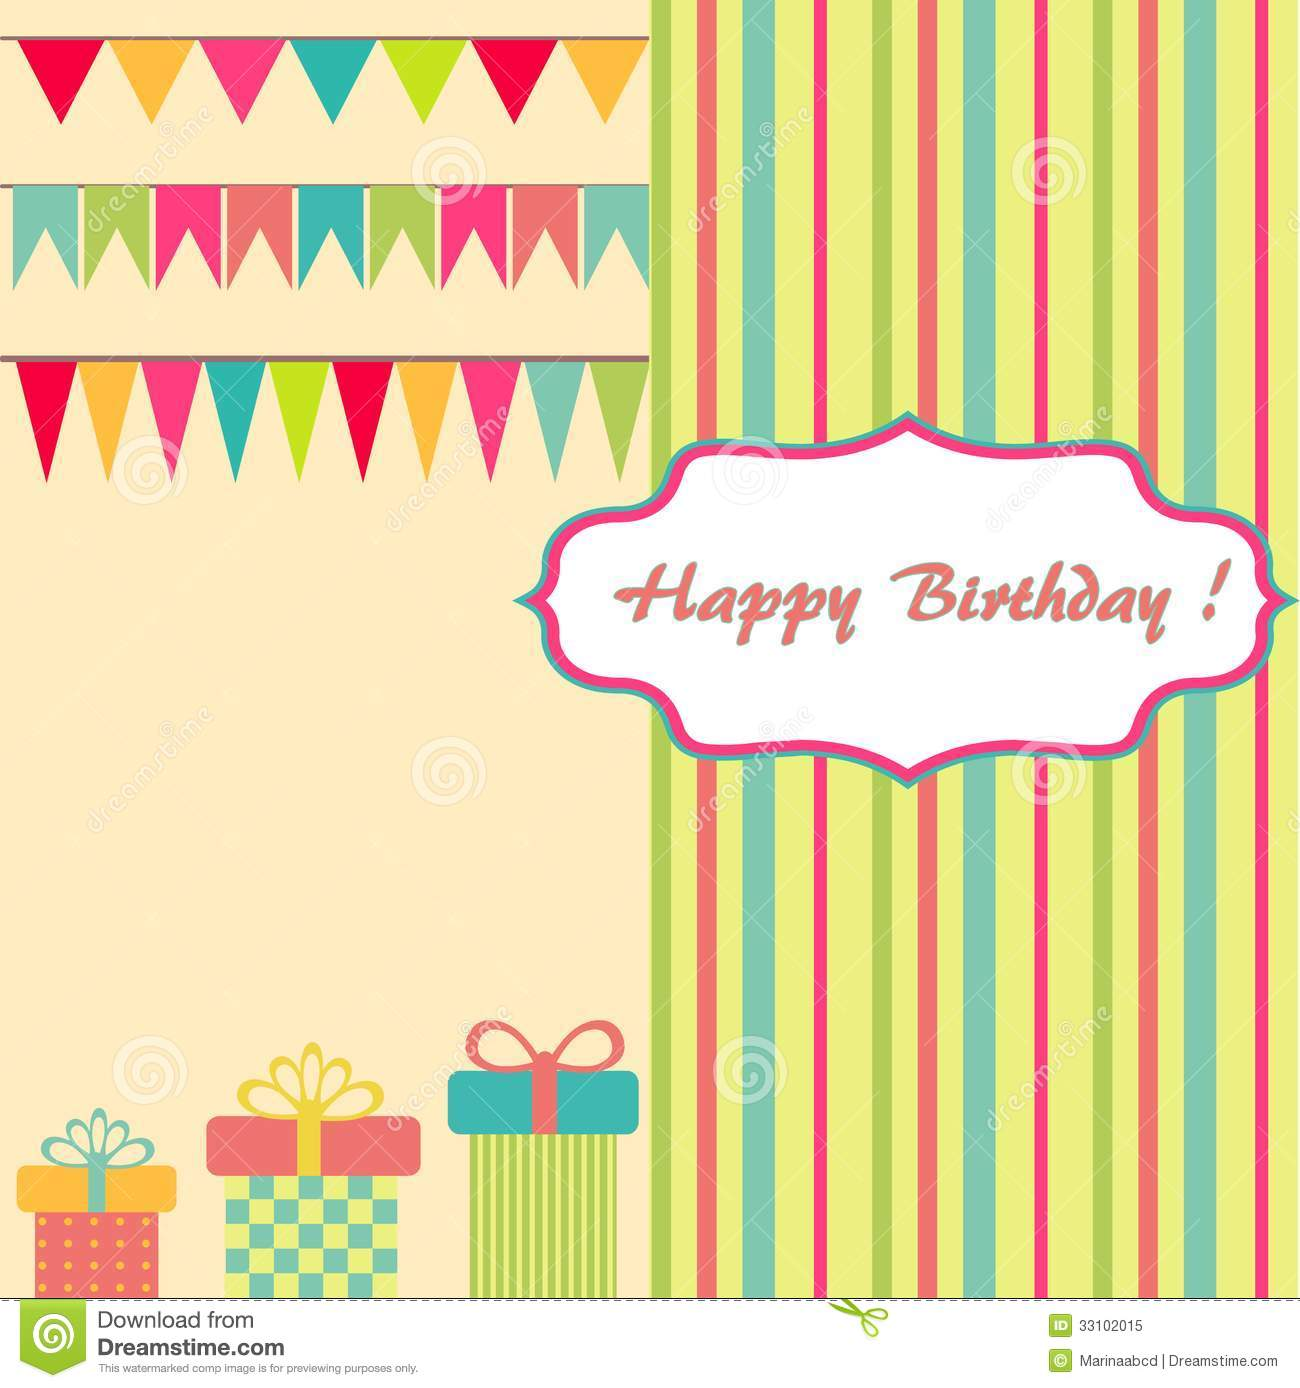 Birthday card free download etamemibawa birthday card free download bookmarktalkfo Images